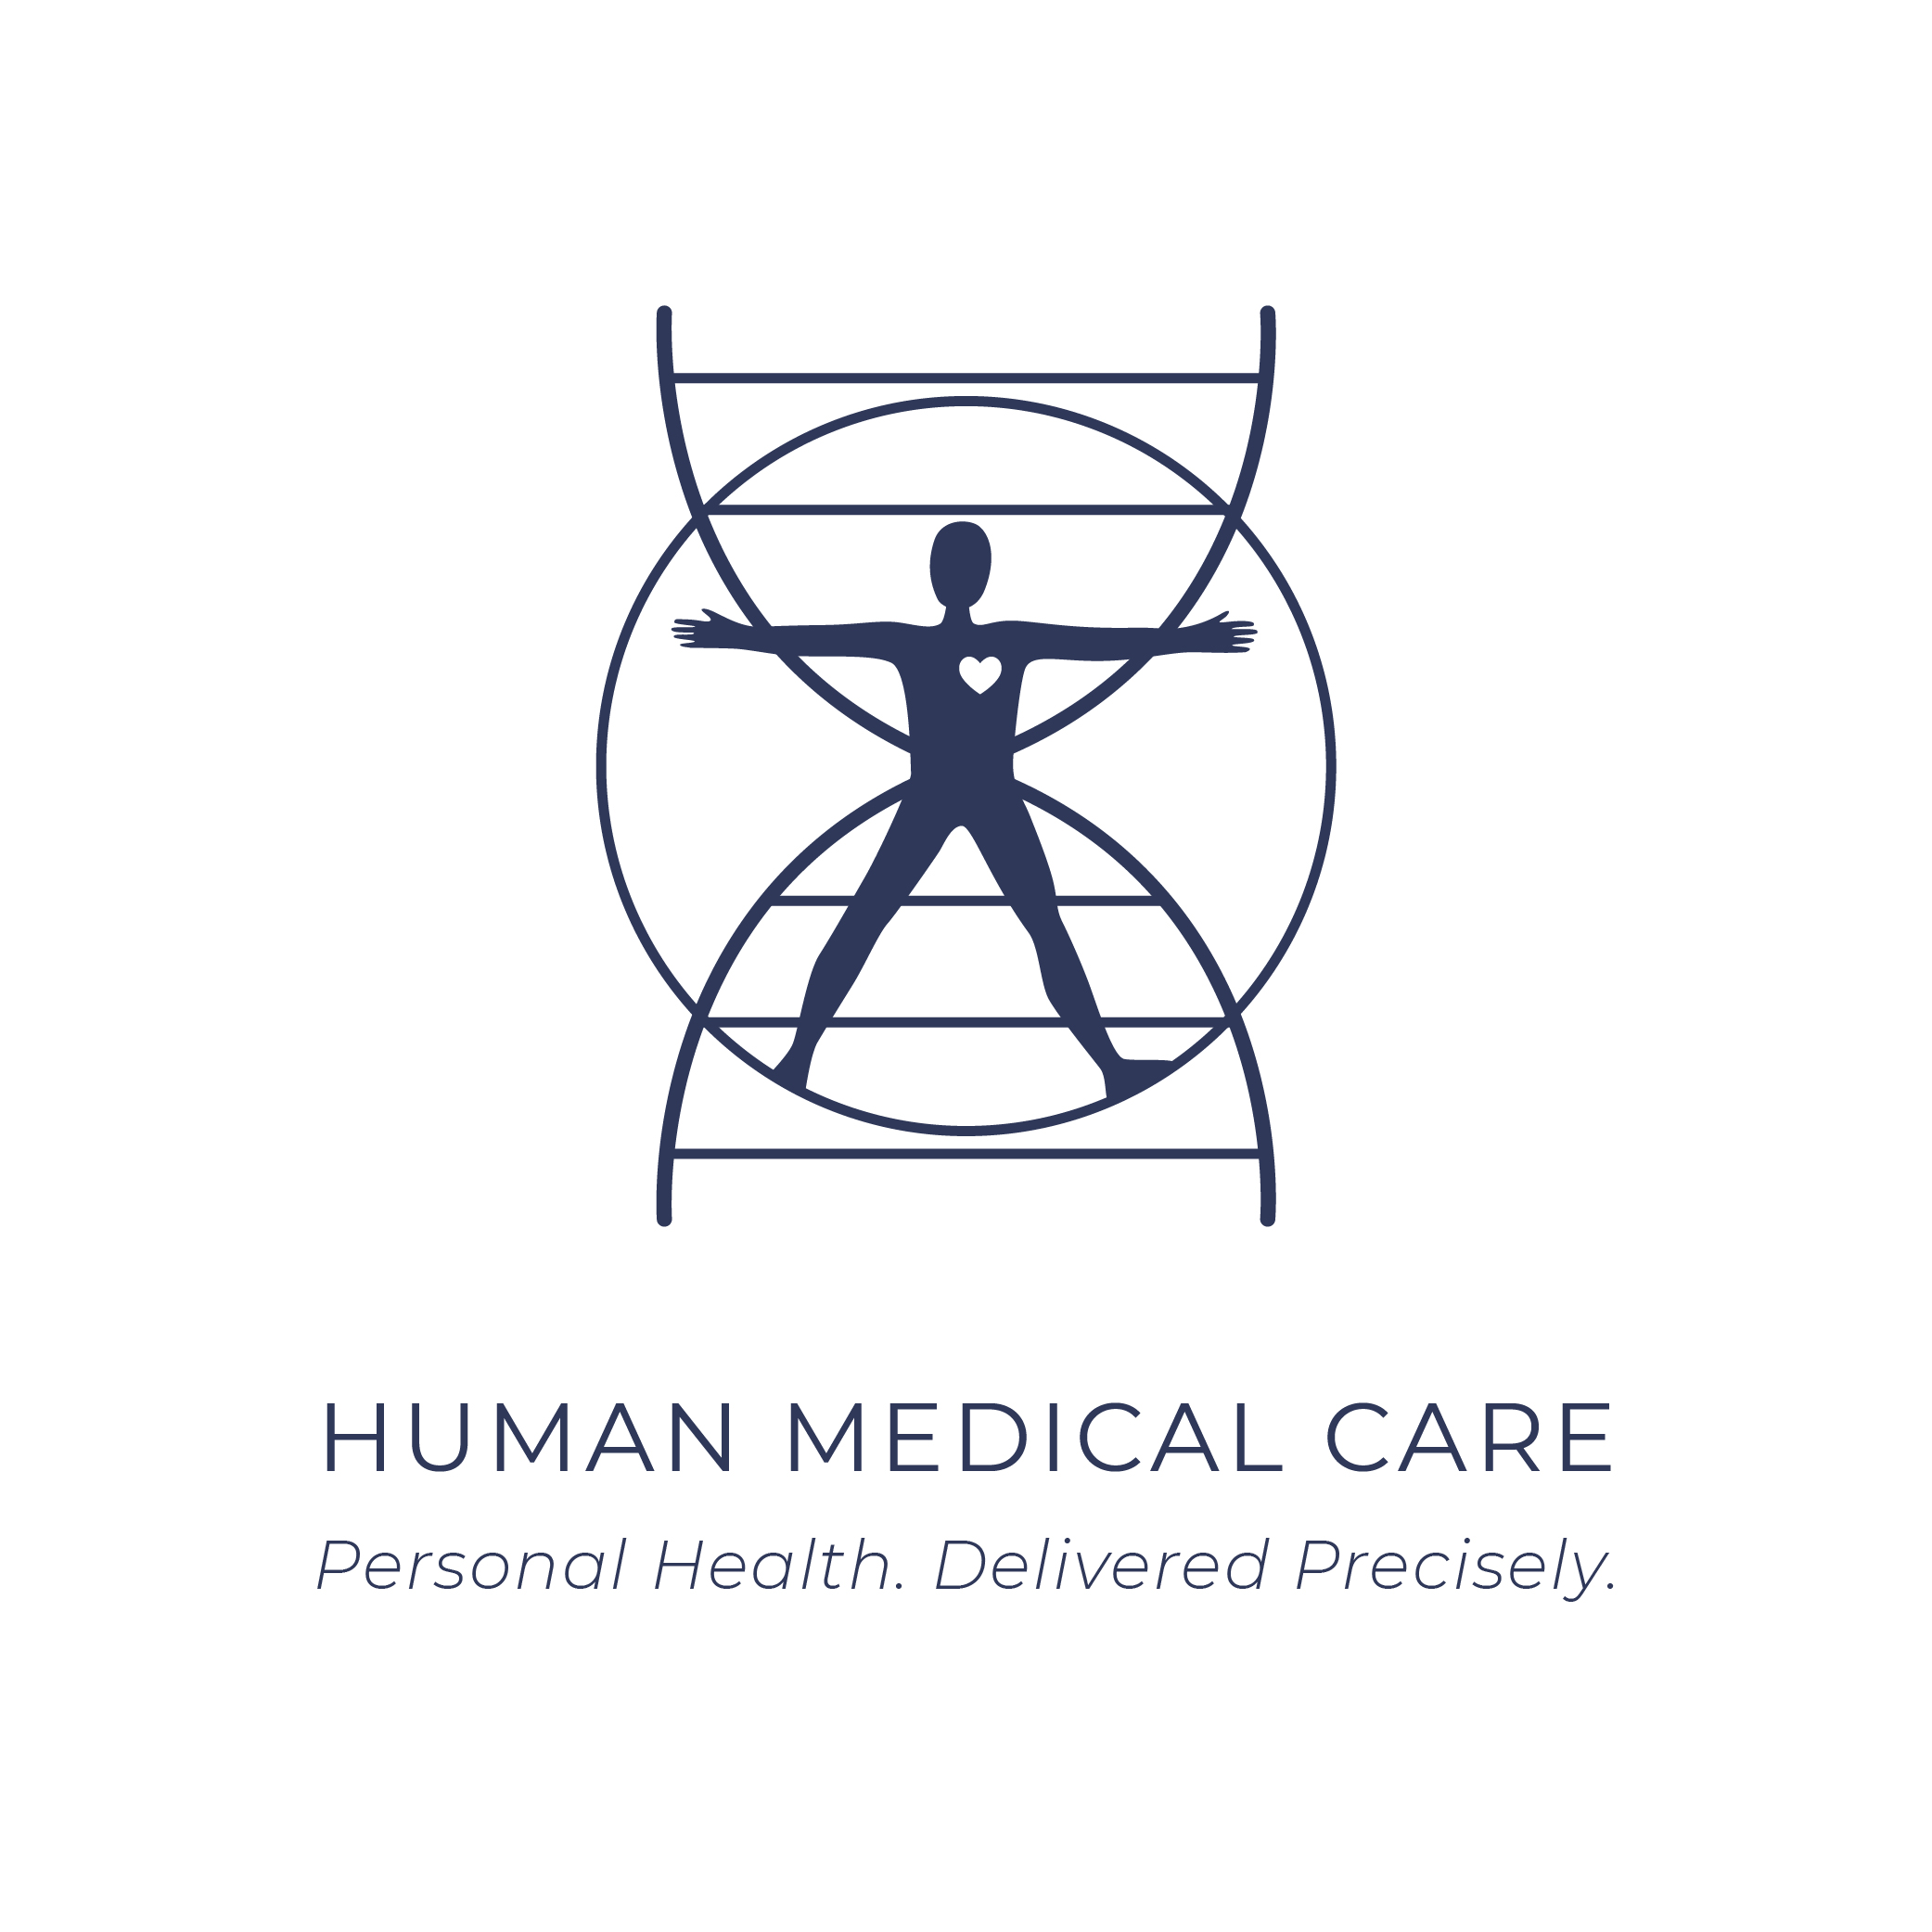 LOGO HUMAN MEDICAL CARE FINAL copy-16.jpg